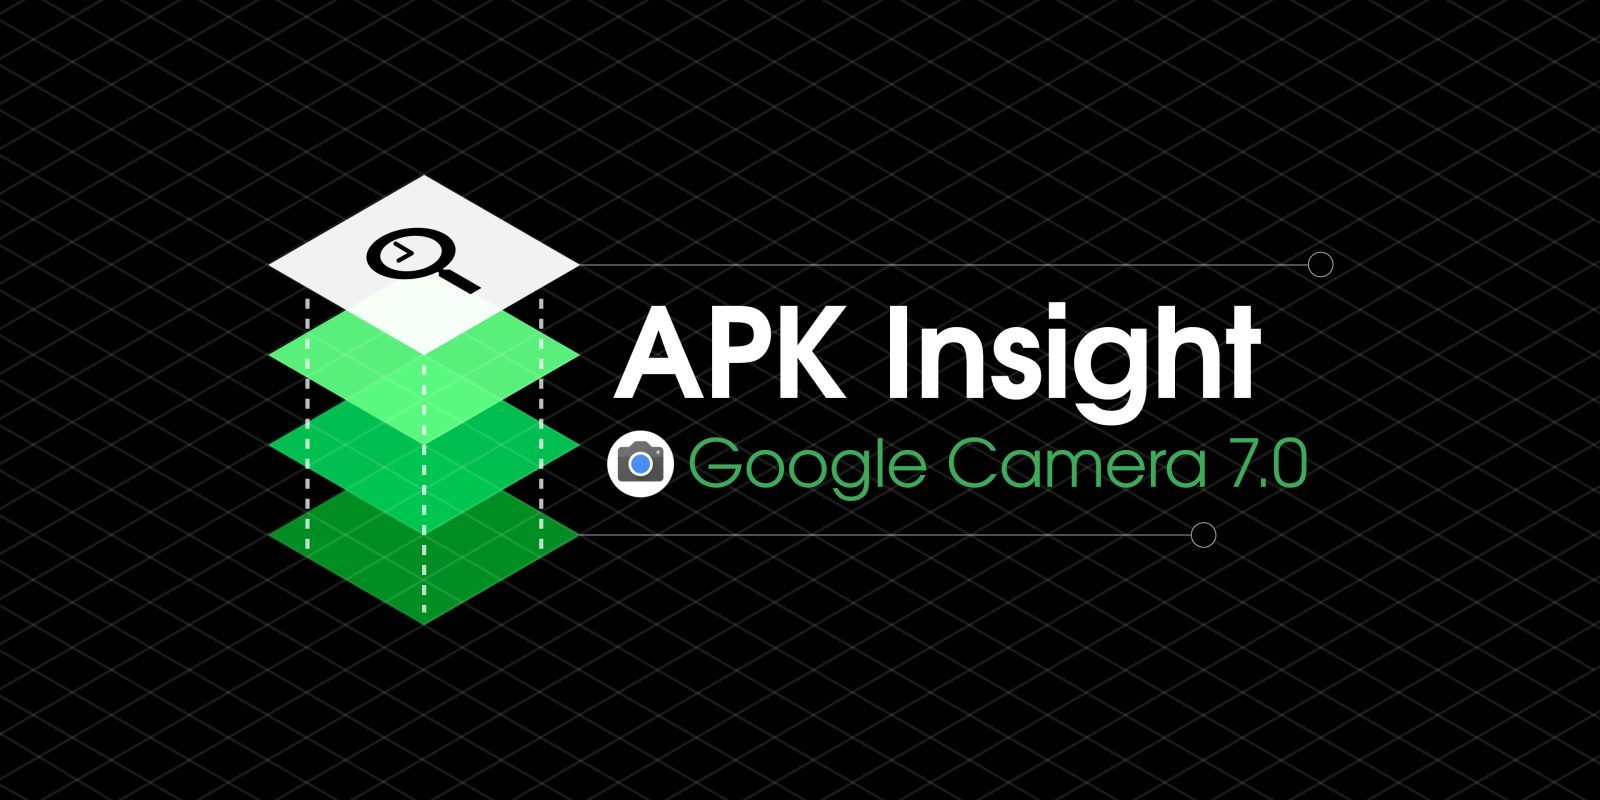 Google Camera 7.0 preps Motion Blur, AR Photobooth, and Audio Zoom [APK Insight]